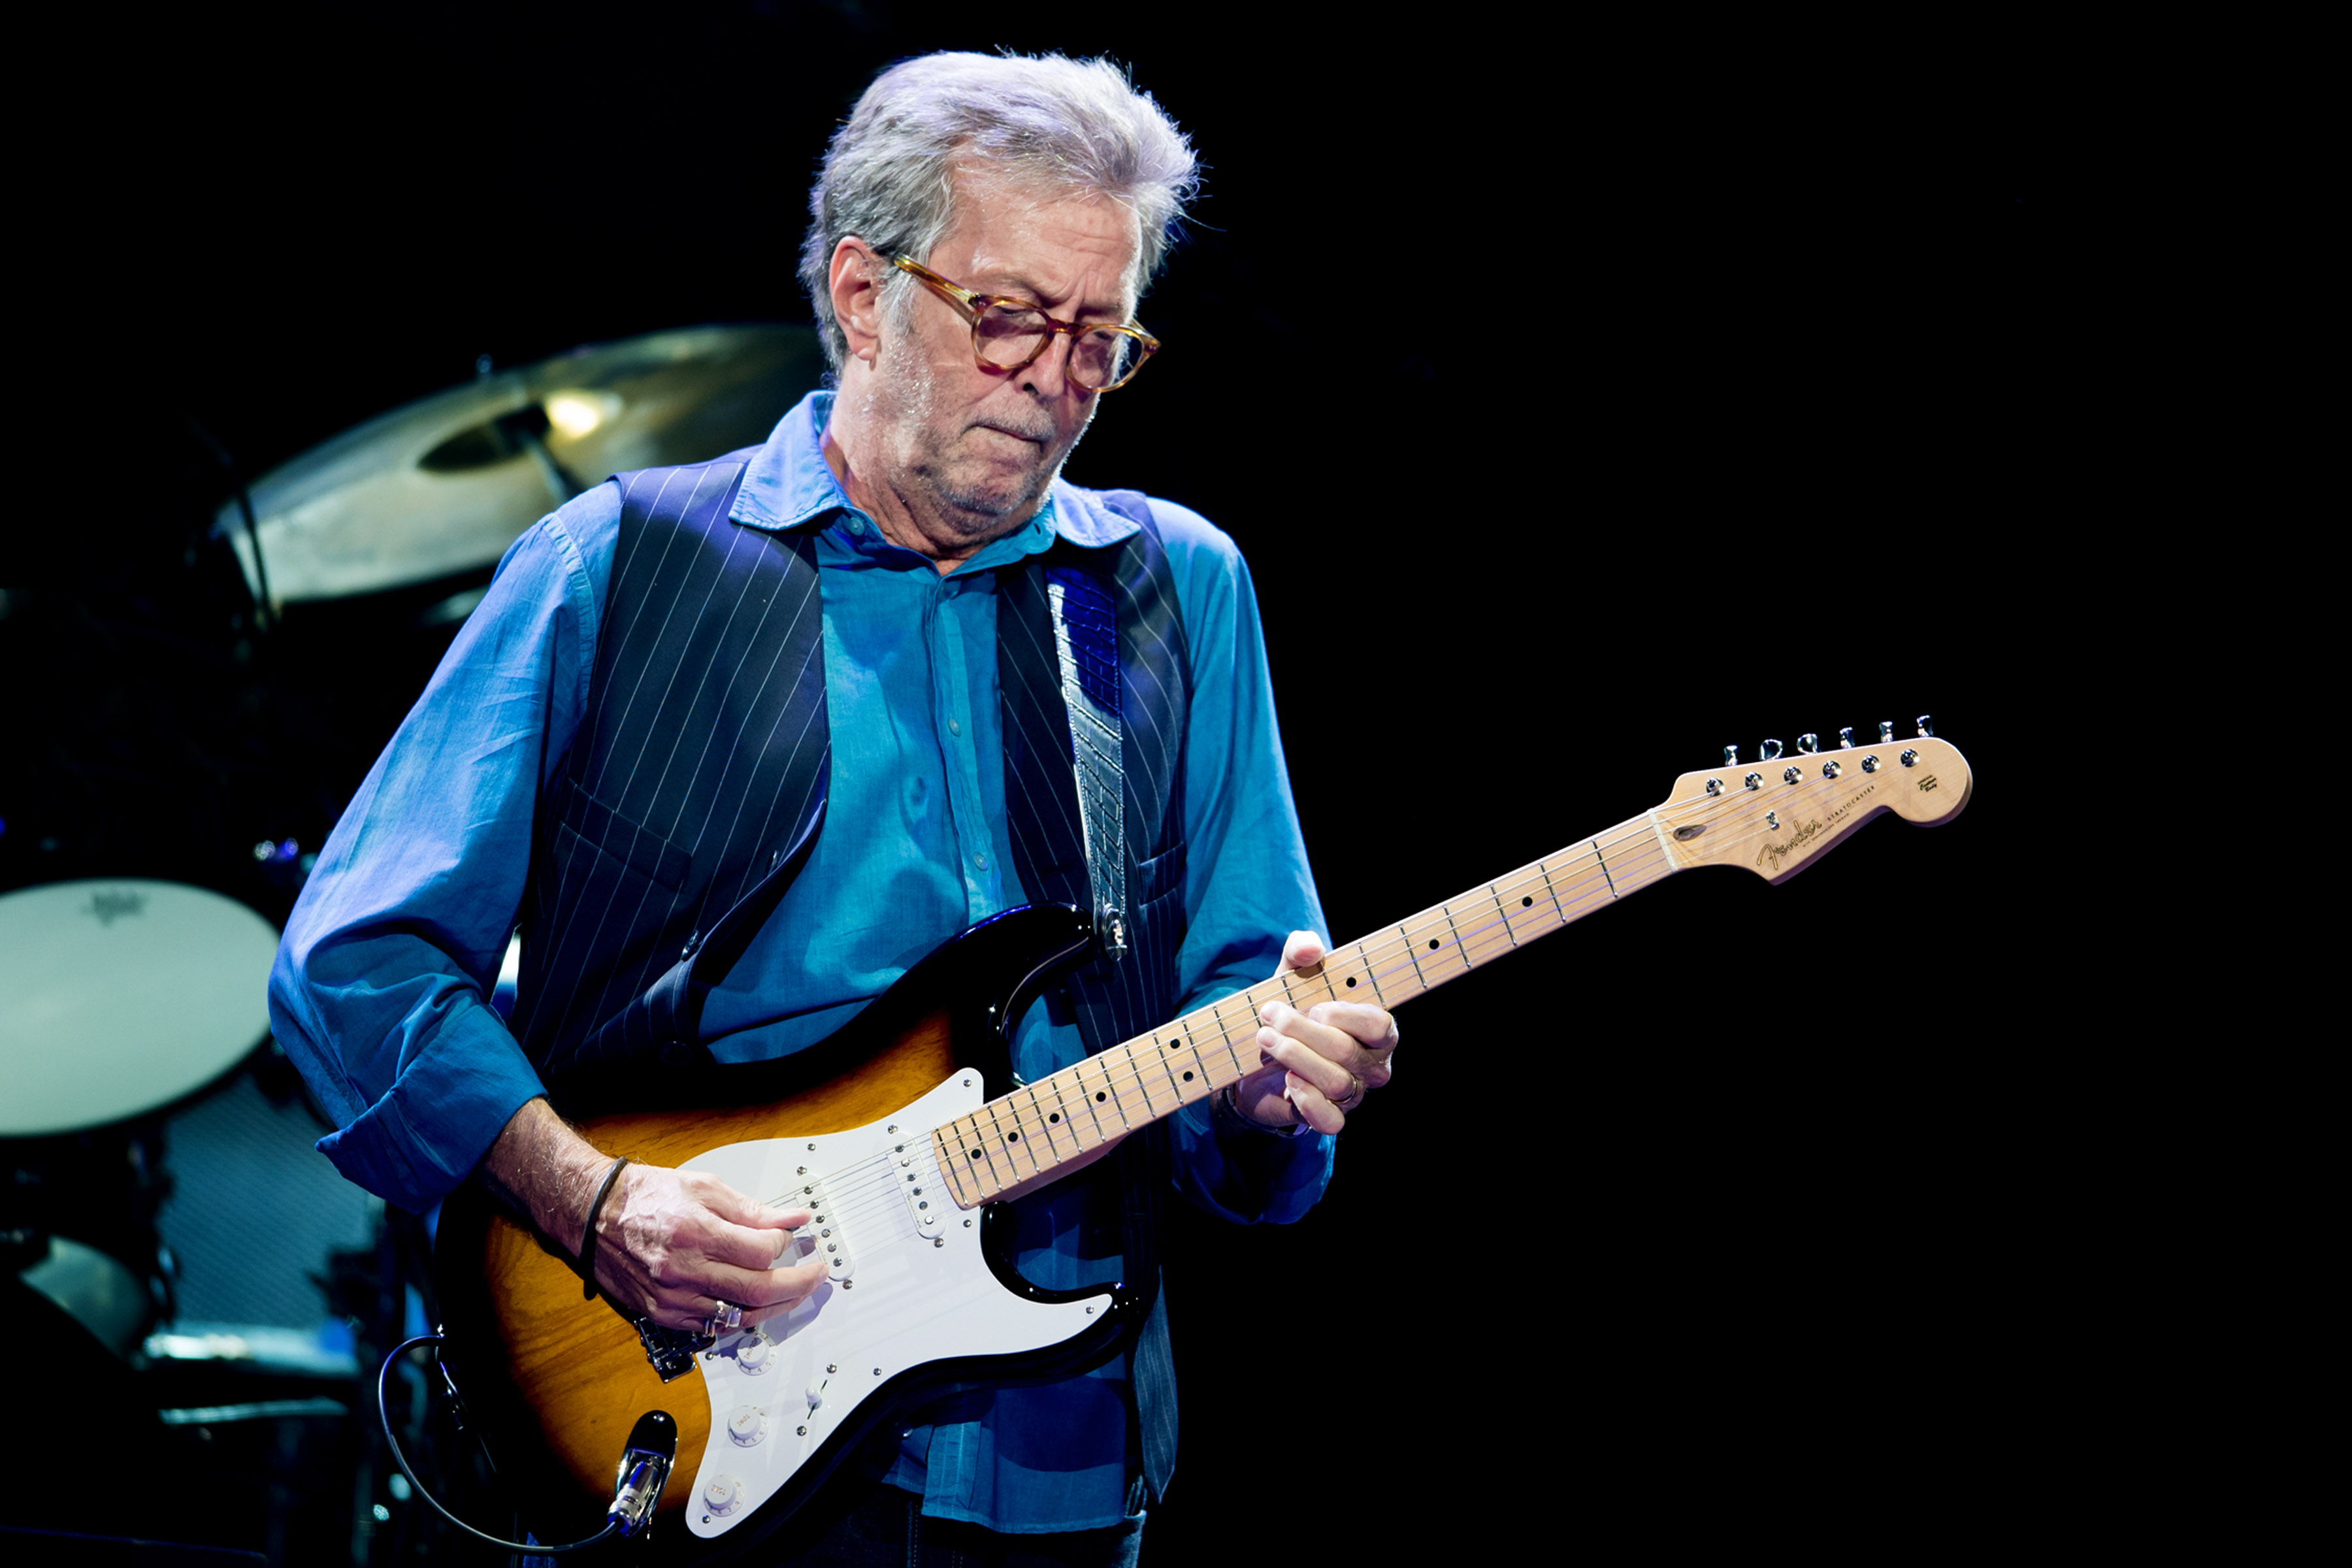 LONDON, ENGLAND - MAY 14: Eric Clapton performs at Royal Albert Hall on May 14, 2015 in London, United Kingdom (Photo by Neil Lupin/Redferns via Getty Images)